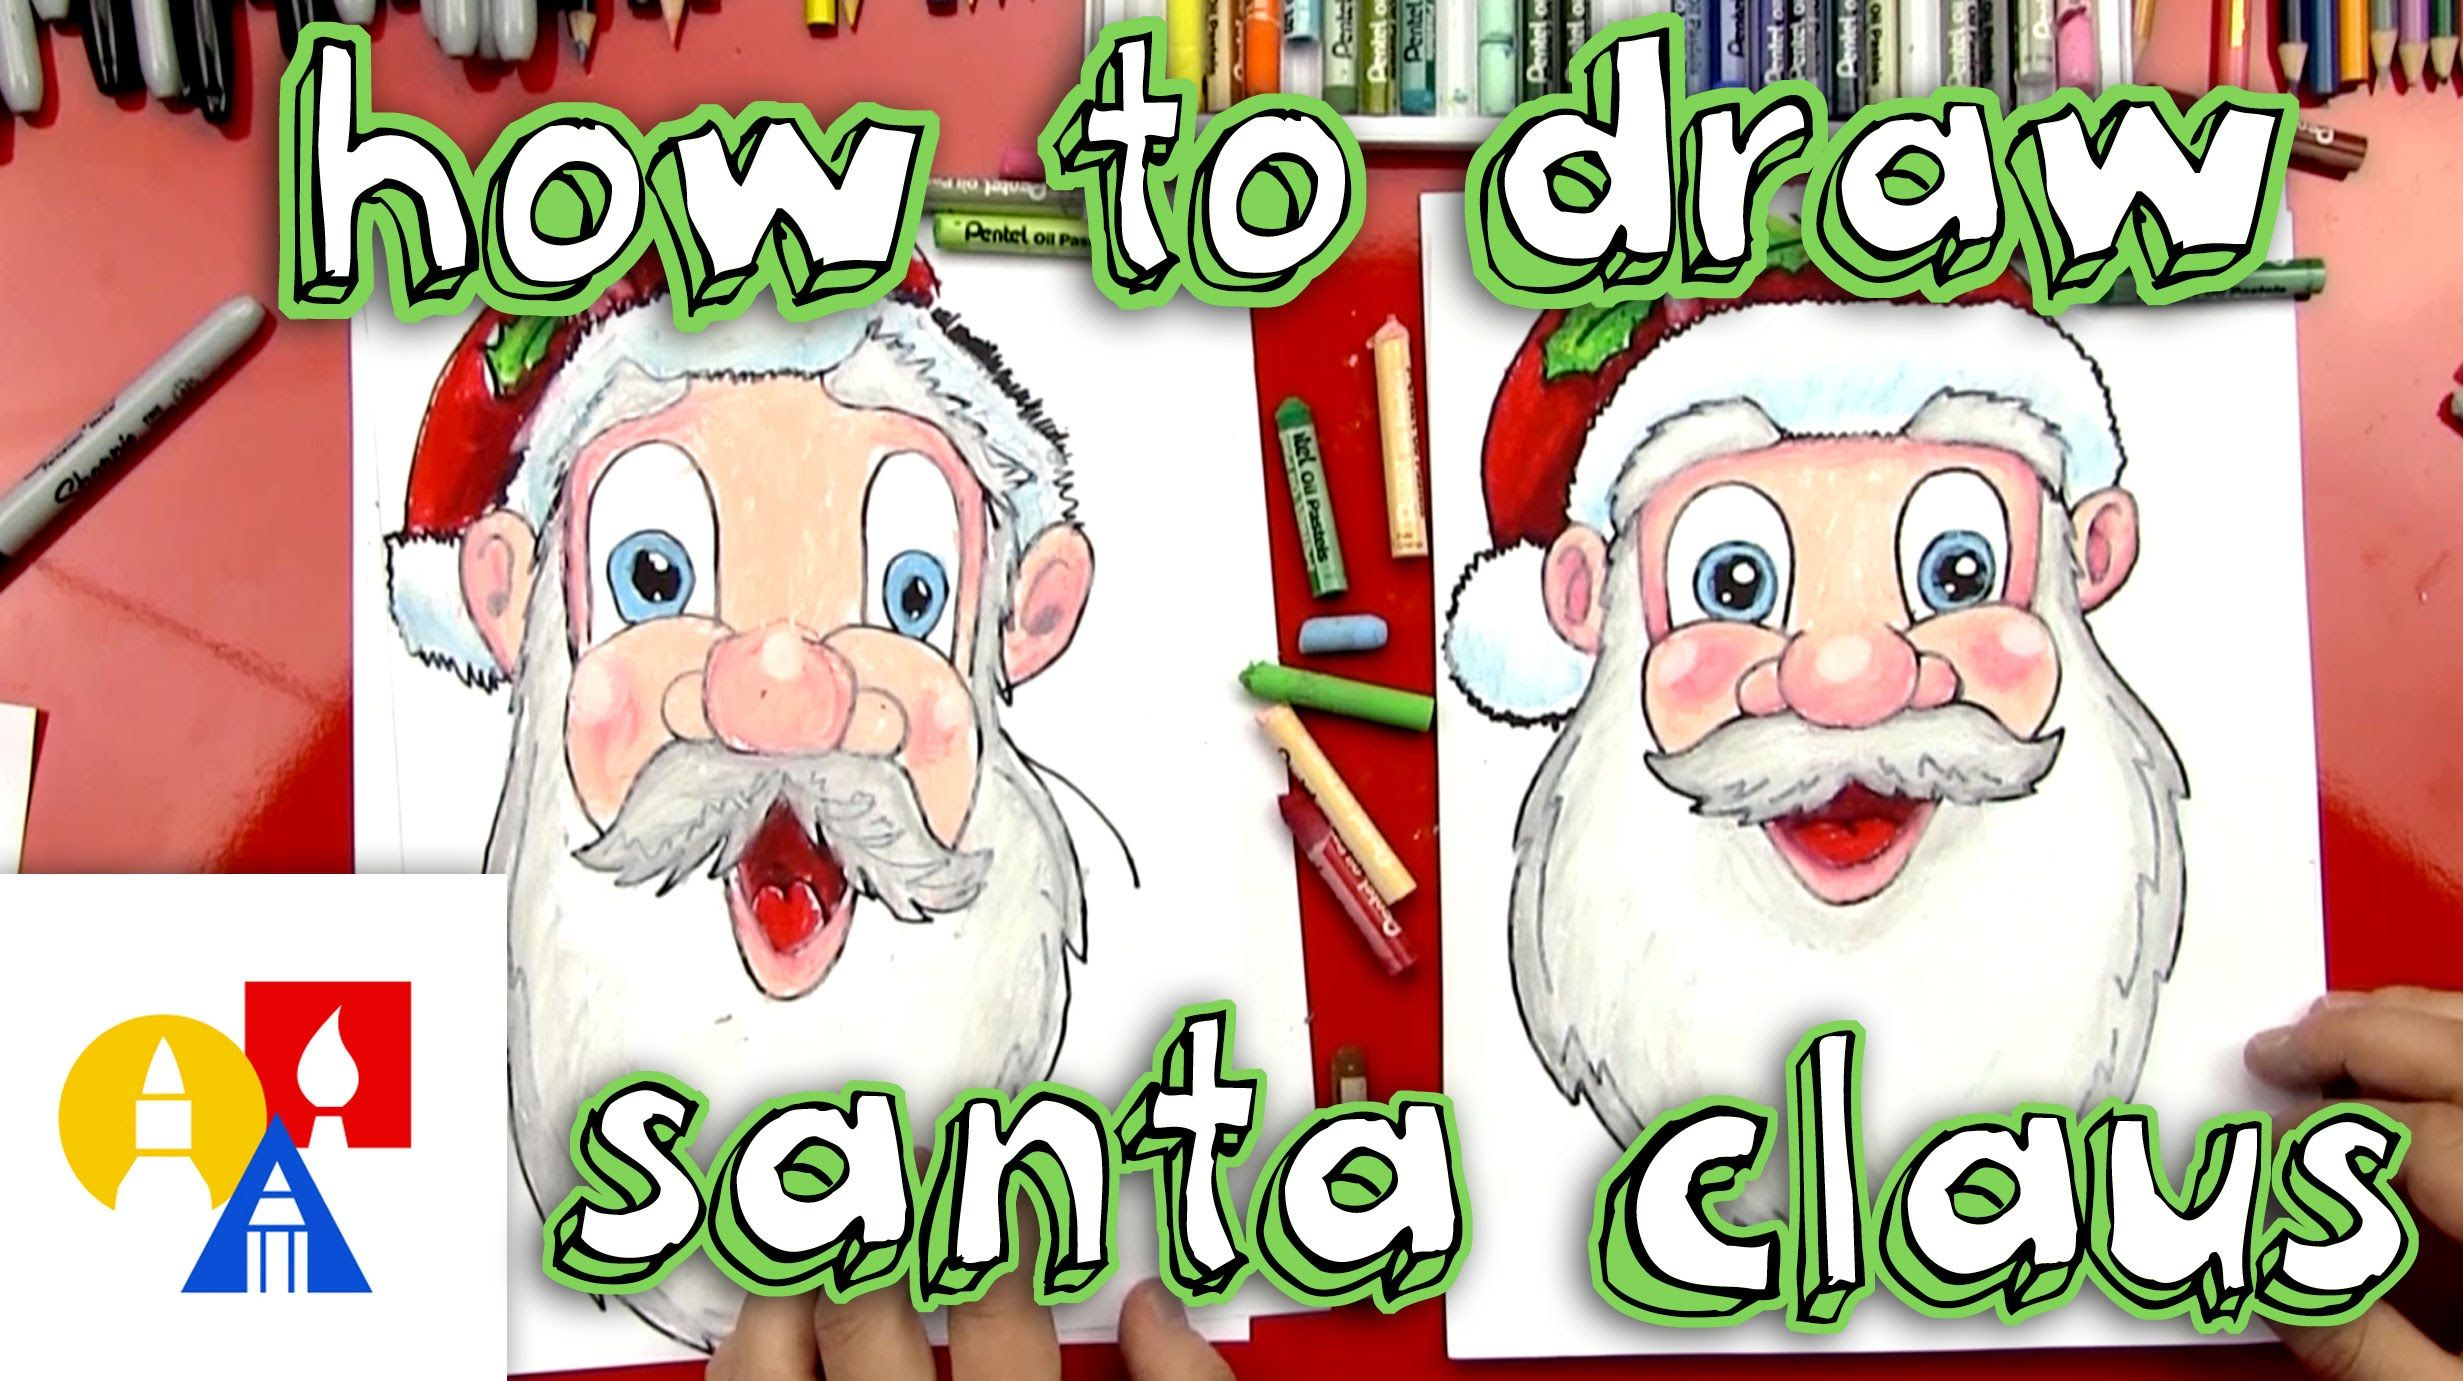 How to draw Santa Claus from Art for Kids Hub. | How to draw santa, Art for kids hub, Art ...